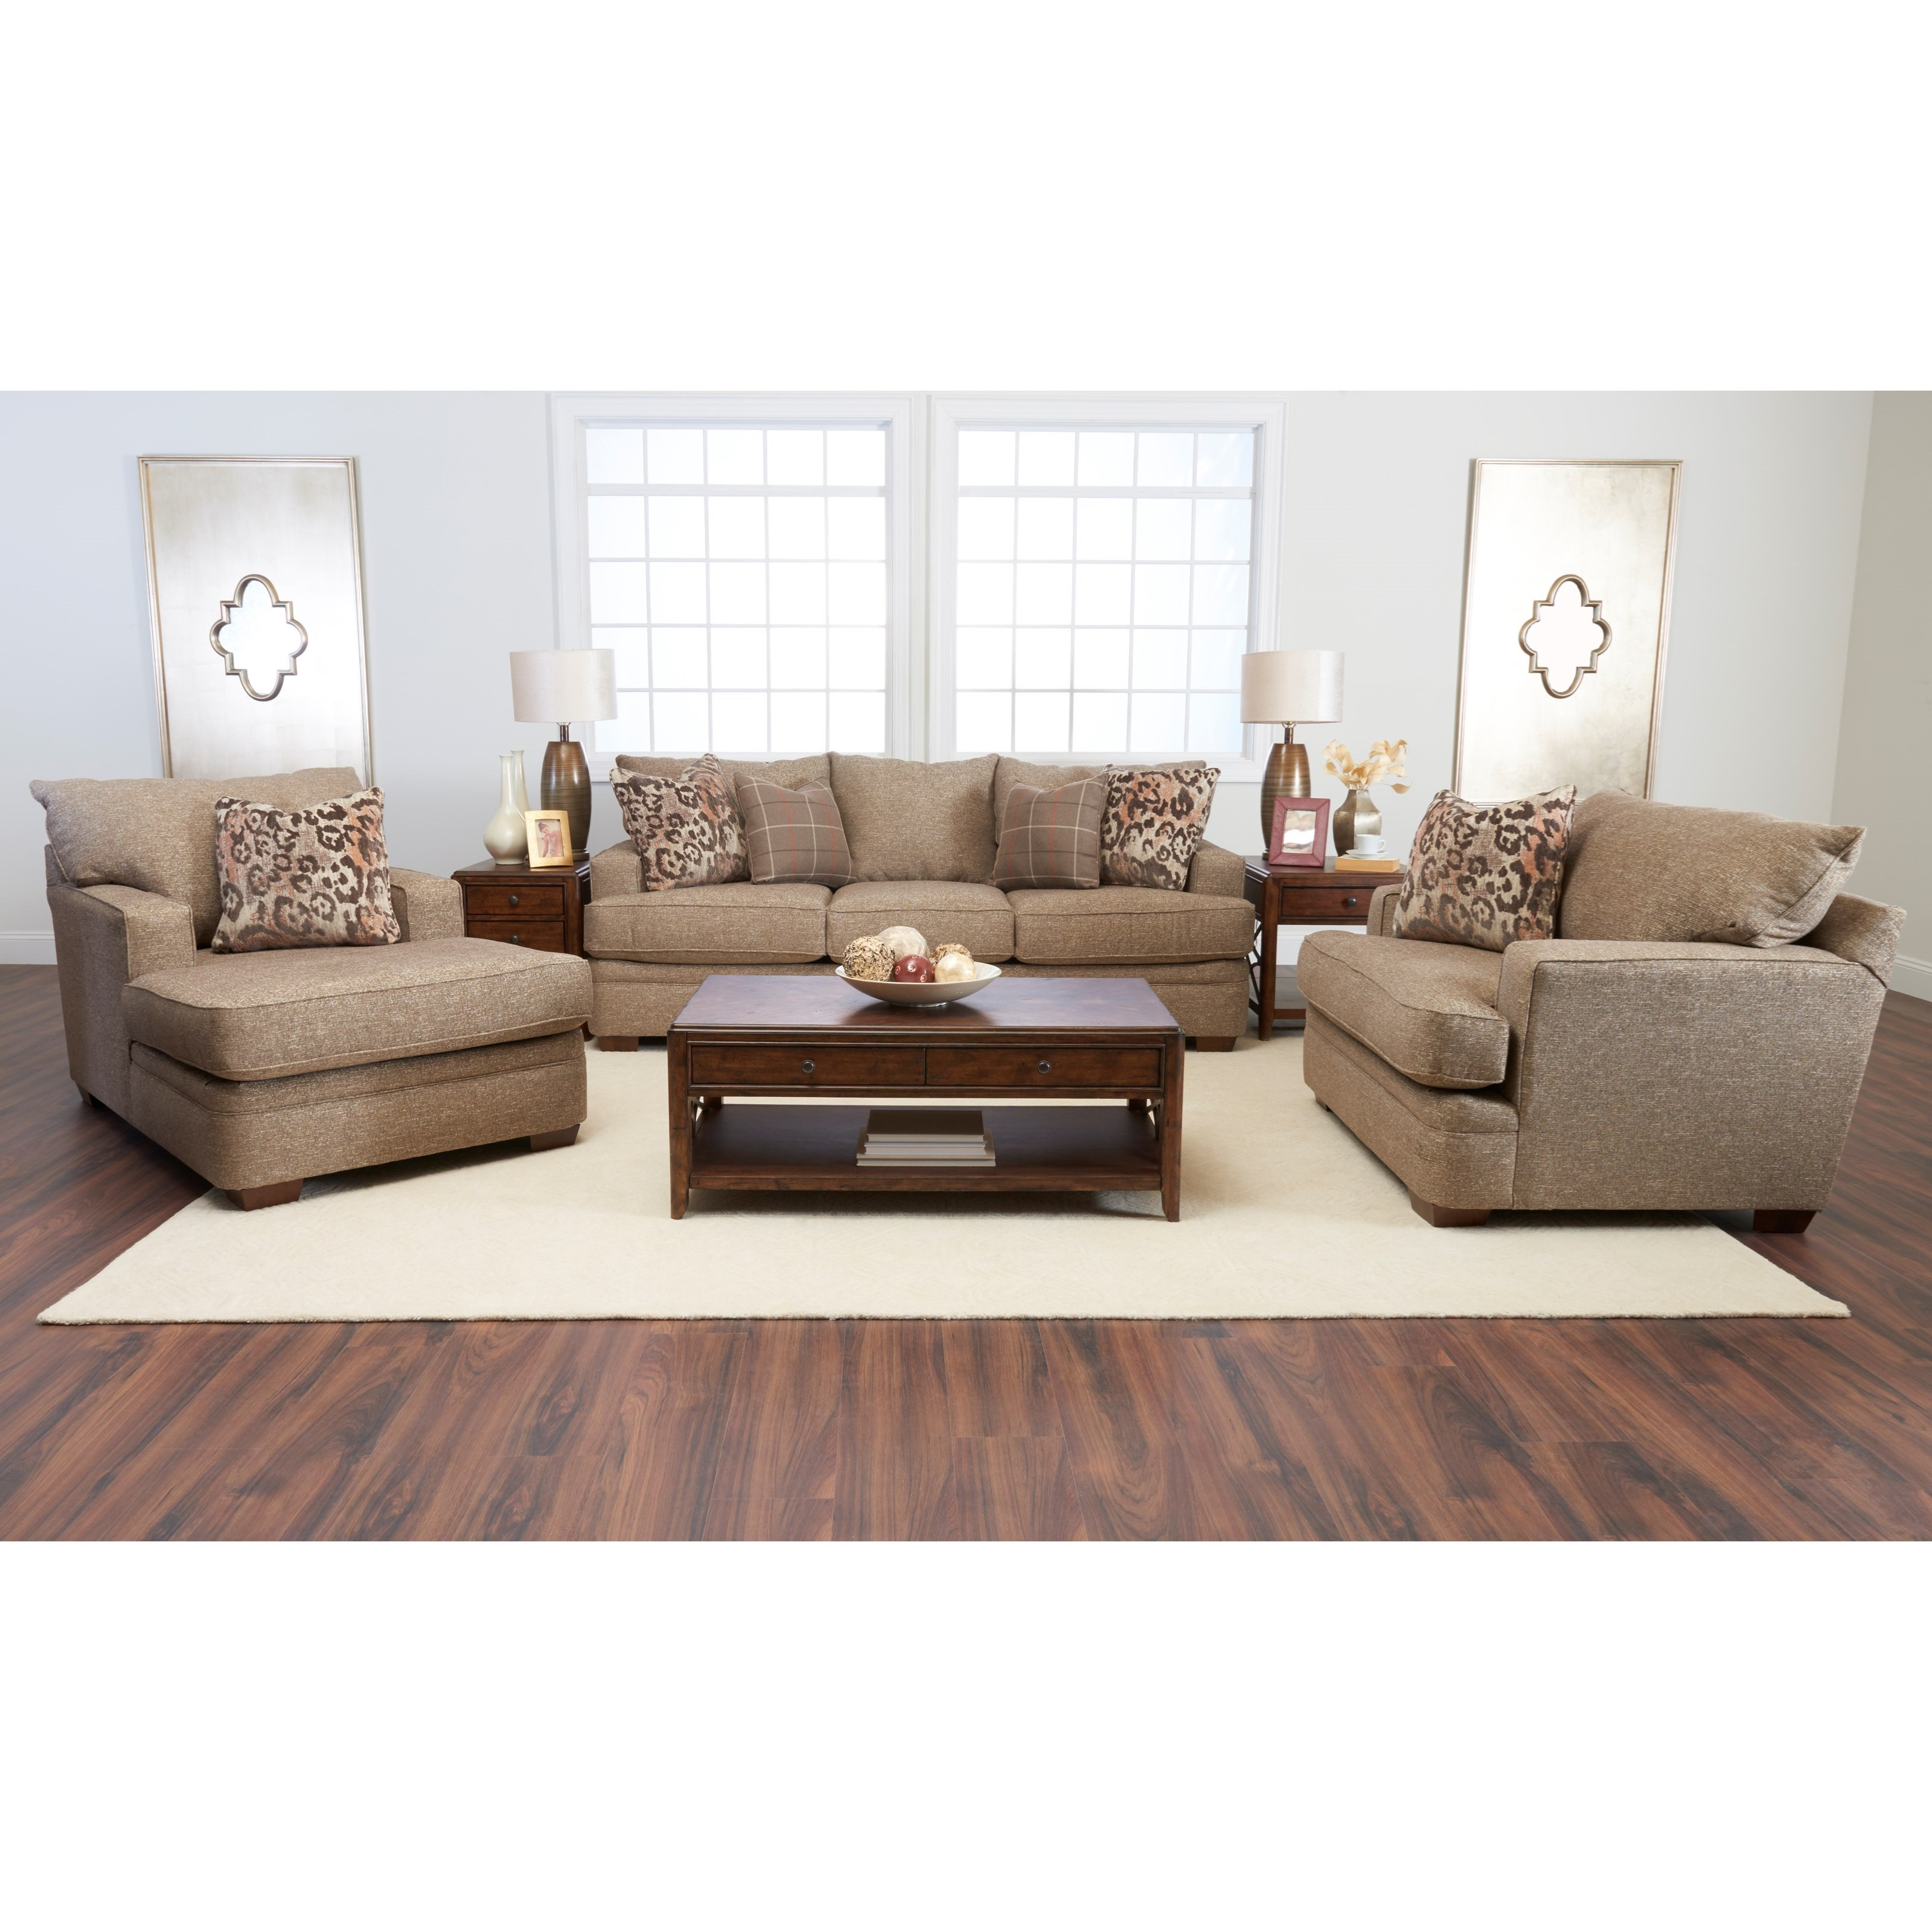 Klaussner chadwick living room group pilgrim furniture for Living room furniture groups